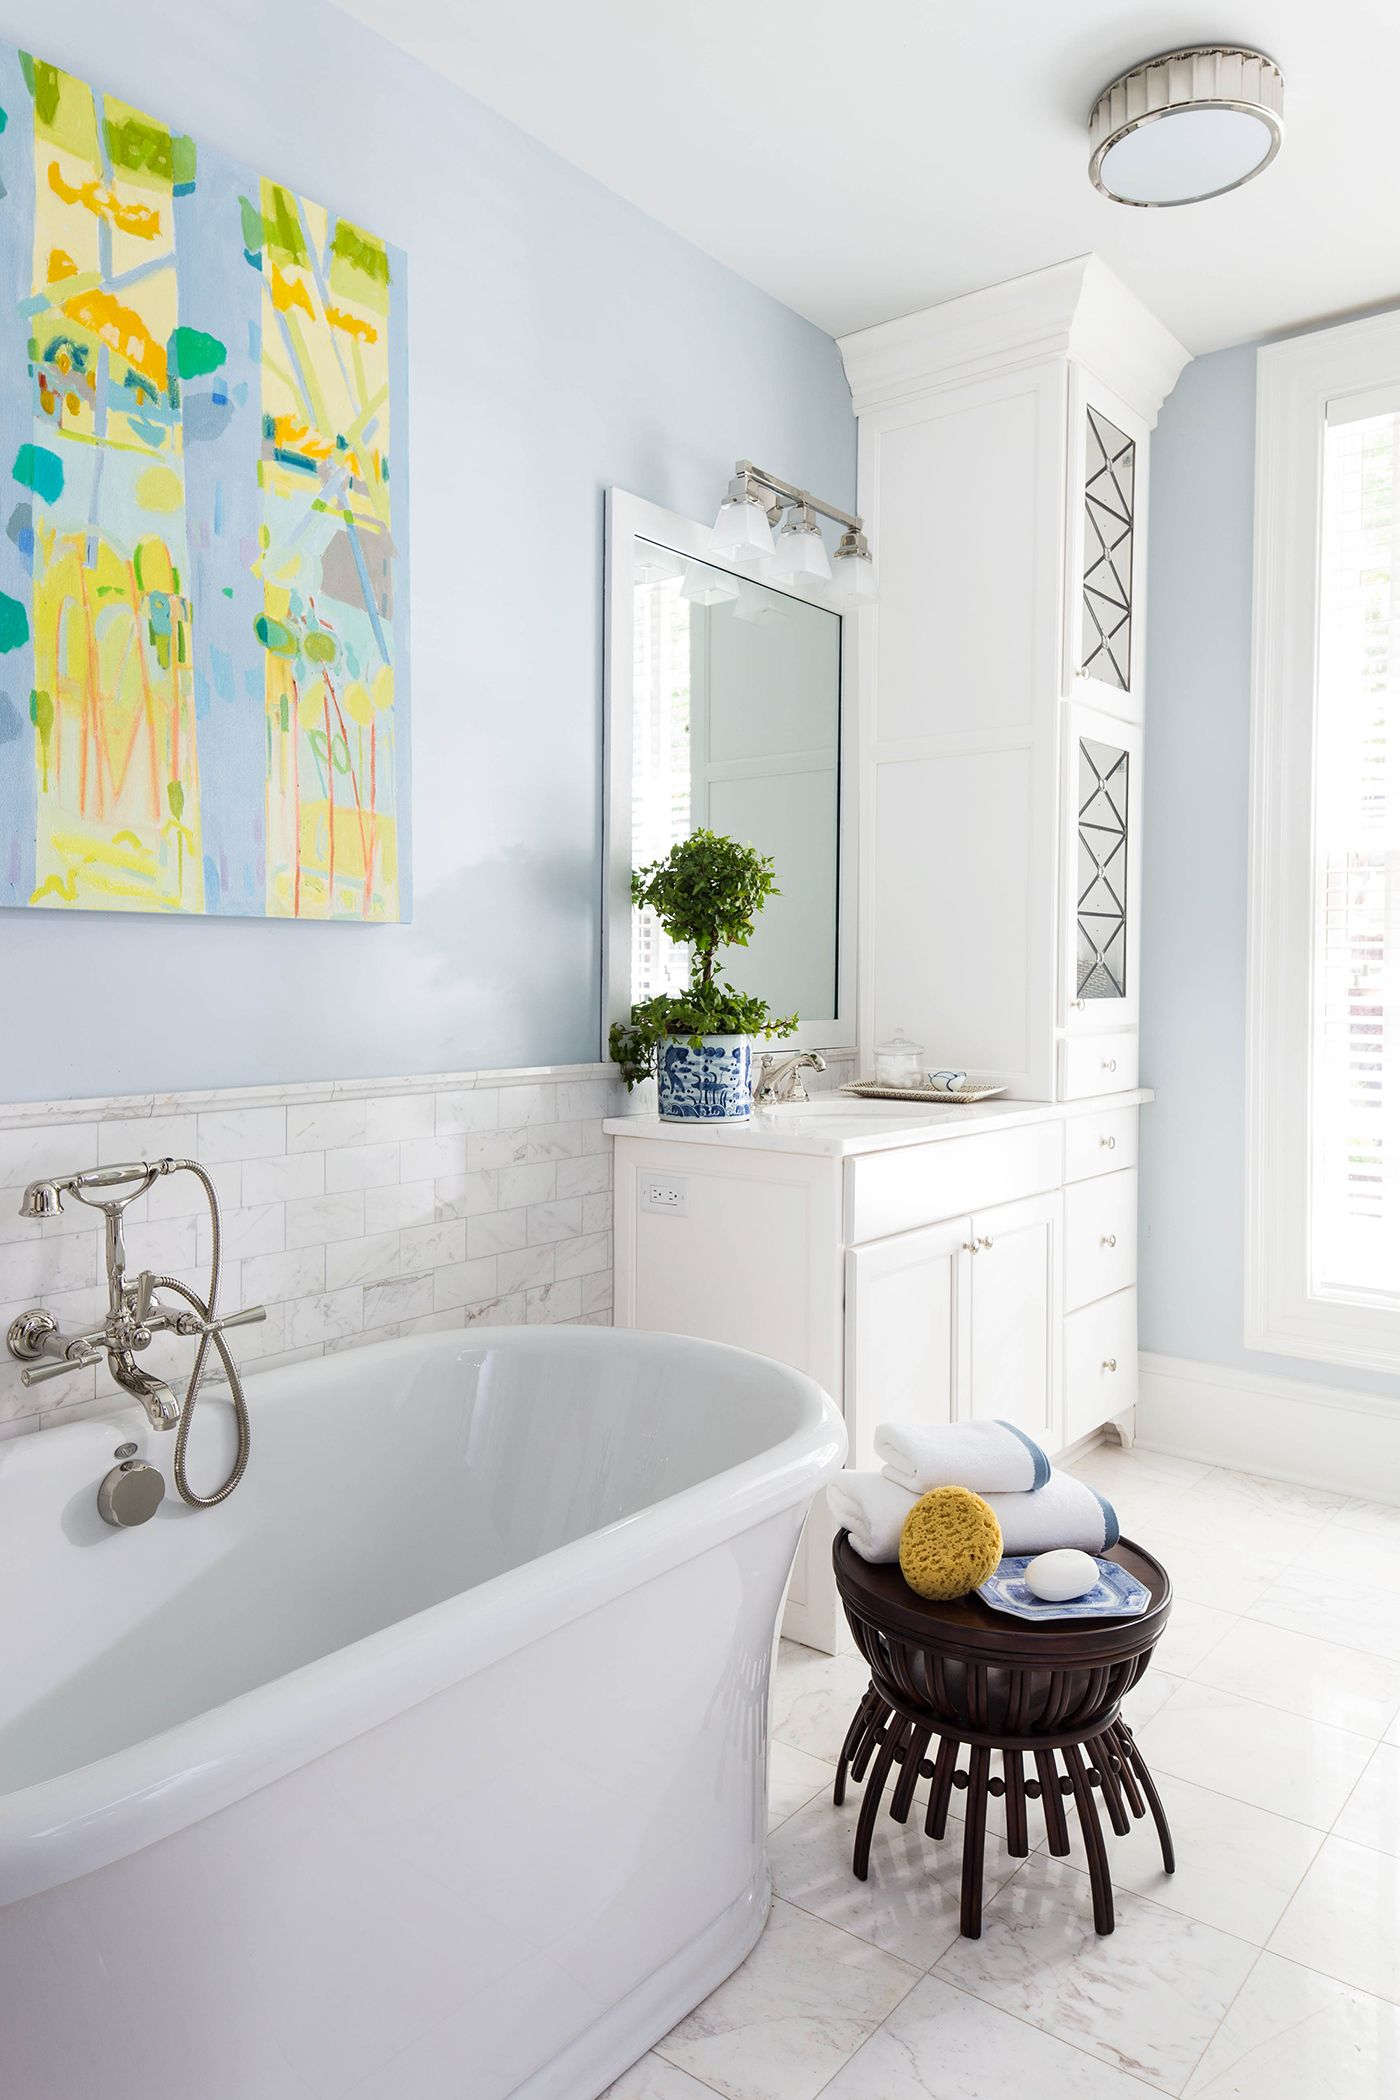 White Wellborn cabinetry in the 2015 Southern Living Idea House  master bath  cabinets are the. White Wellborn cabinetry in the 2015 Southern Living Idea House